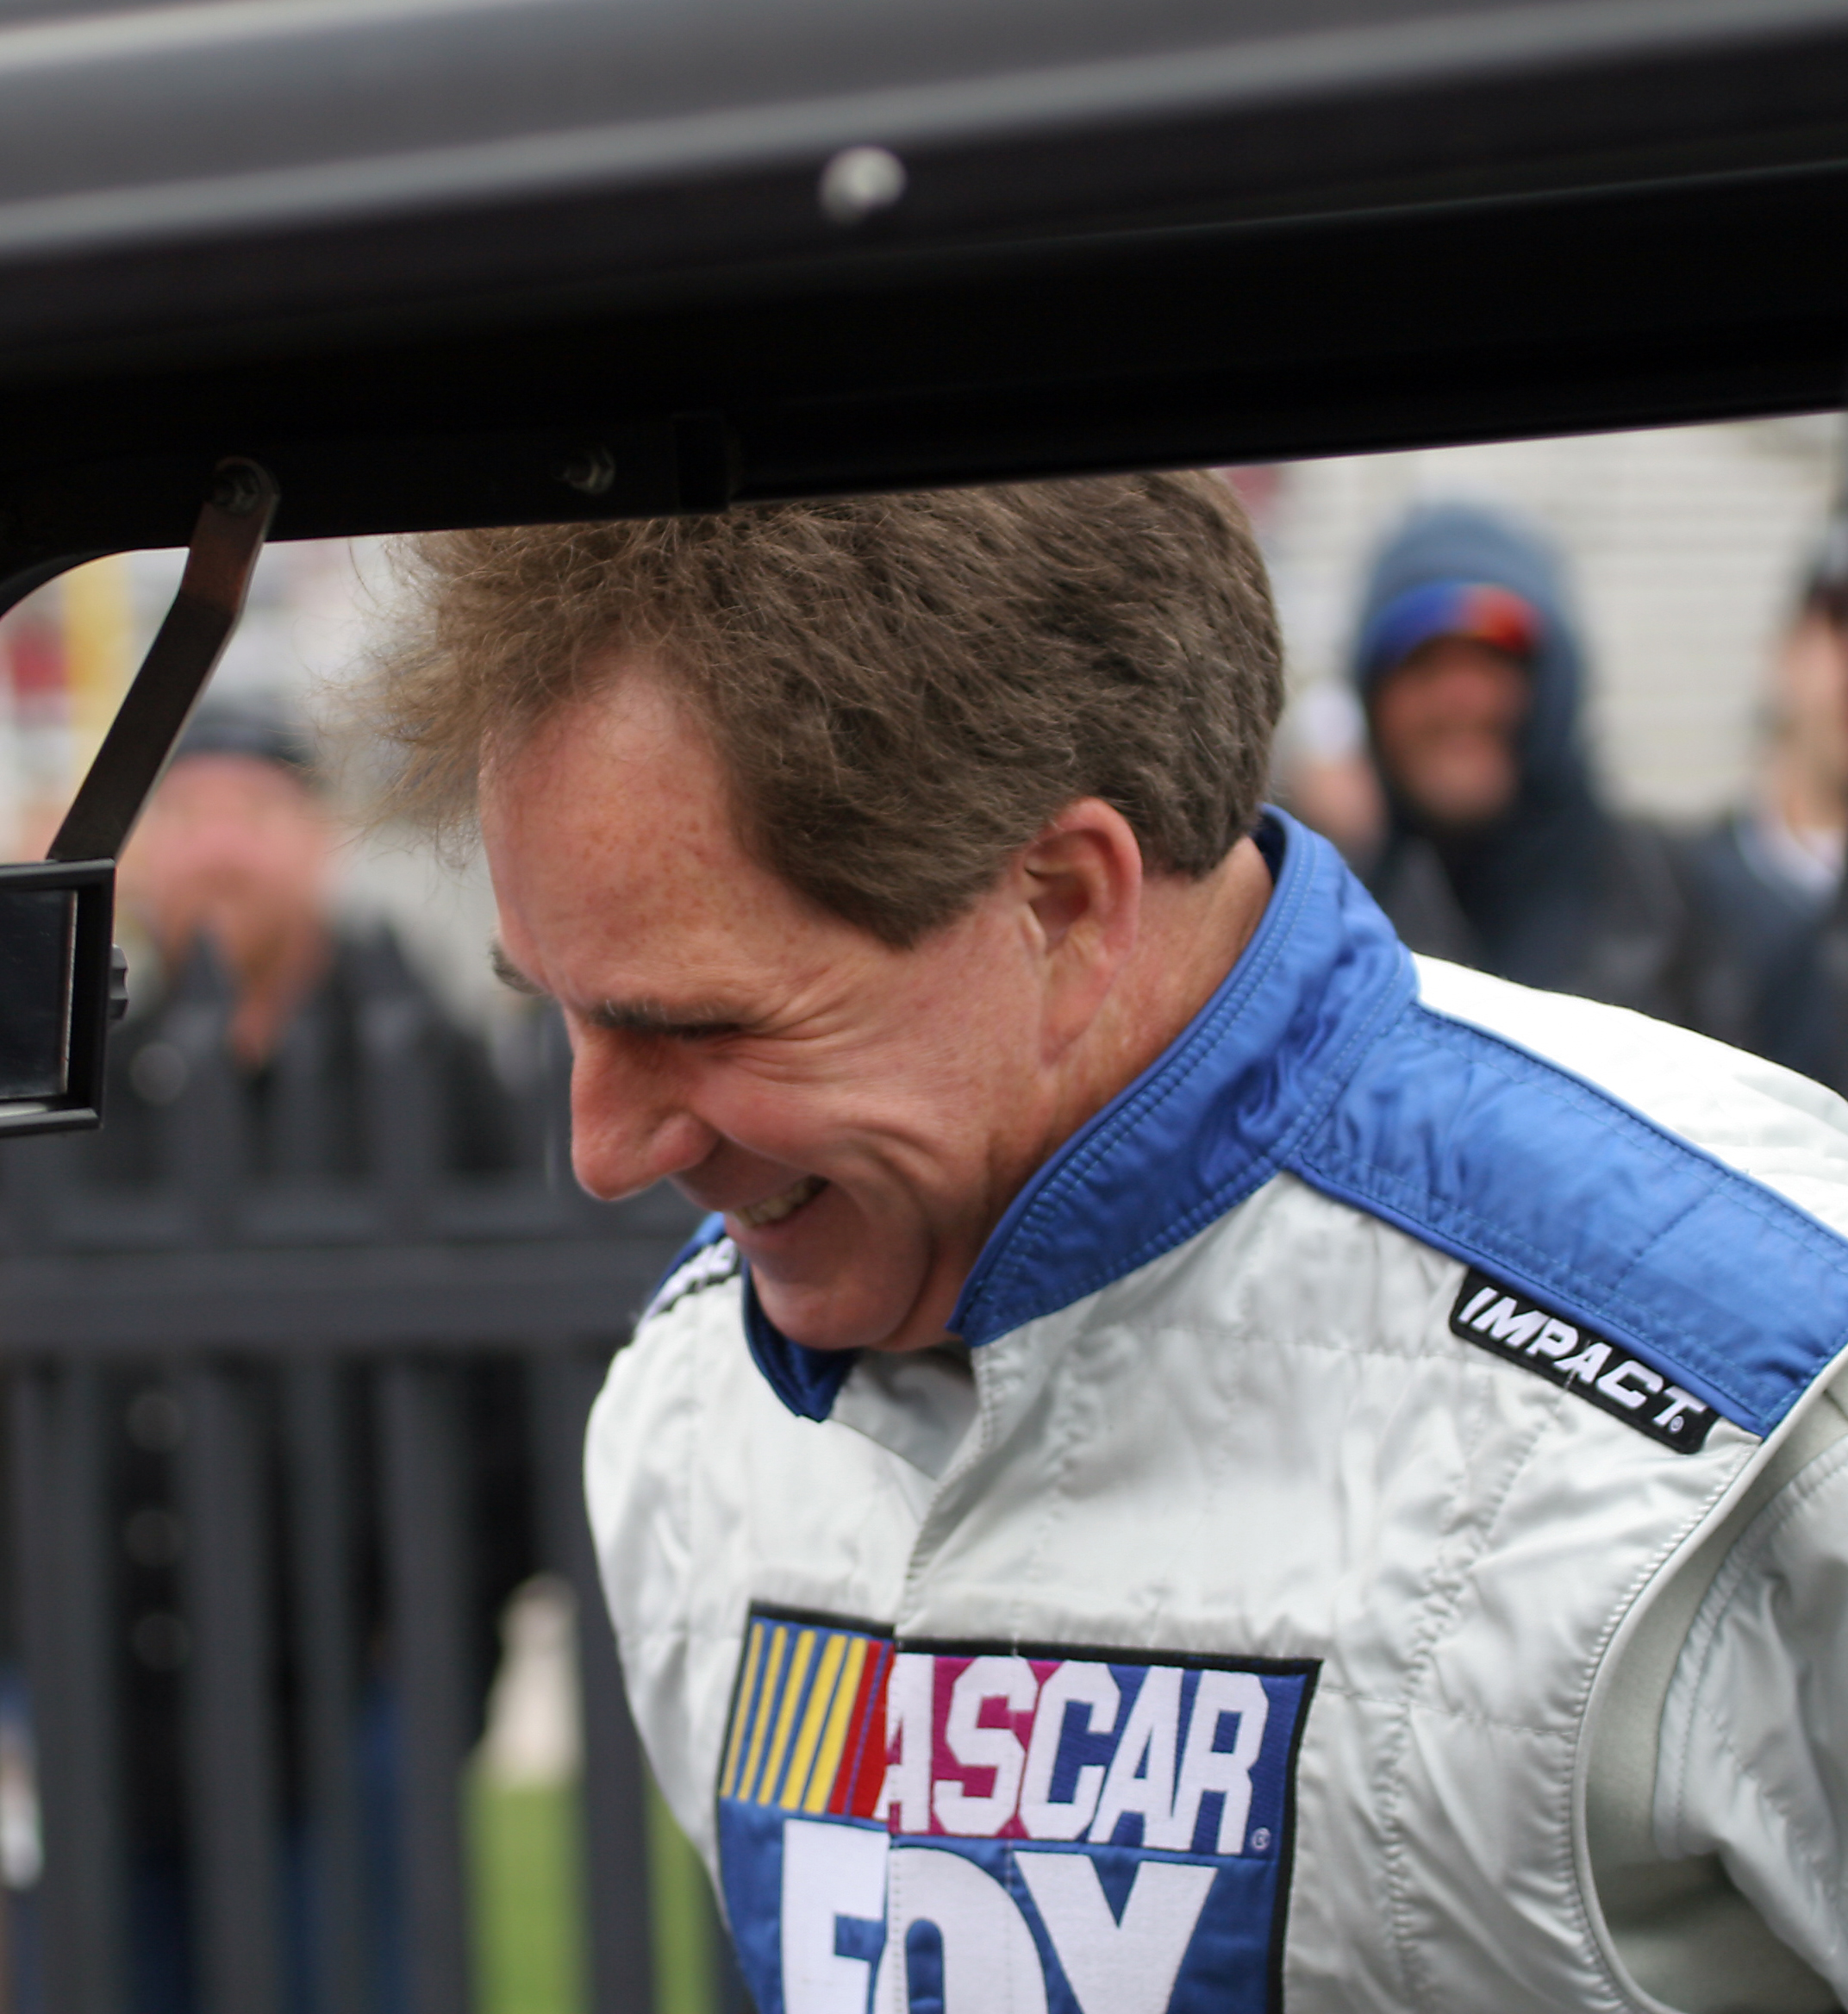 The 71-year old son of father LeRoy Waltrip and mother Margaret Waltrip Darrell Waltrip in 2018 photo. Darrell Waltrip earned a  million dollar salary - leaving the net worth at 25 million in 2018